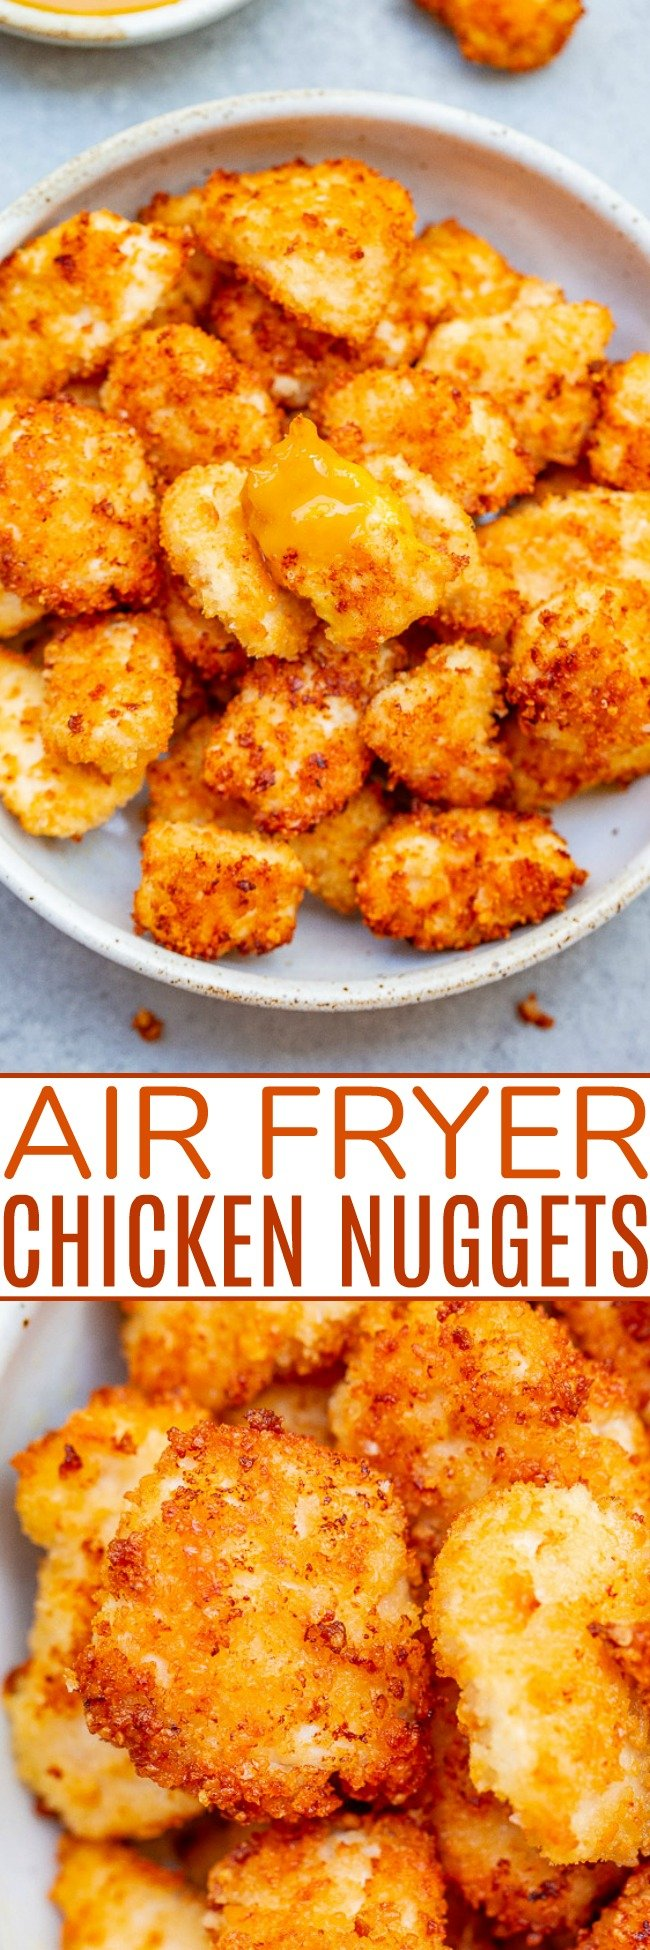 Air Fryer Crispy Chicken Nuggets - These EASY air fryer nuggetsare coated in a mixture of Panko breadcrumbs and grated Parmesan, which makes them EXTRA flavorful and SO CRISPY!! Dip them in this 30-second homemade honey mustard sauce for a guaranteed family FAVORITE!!